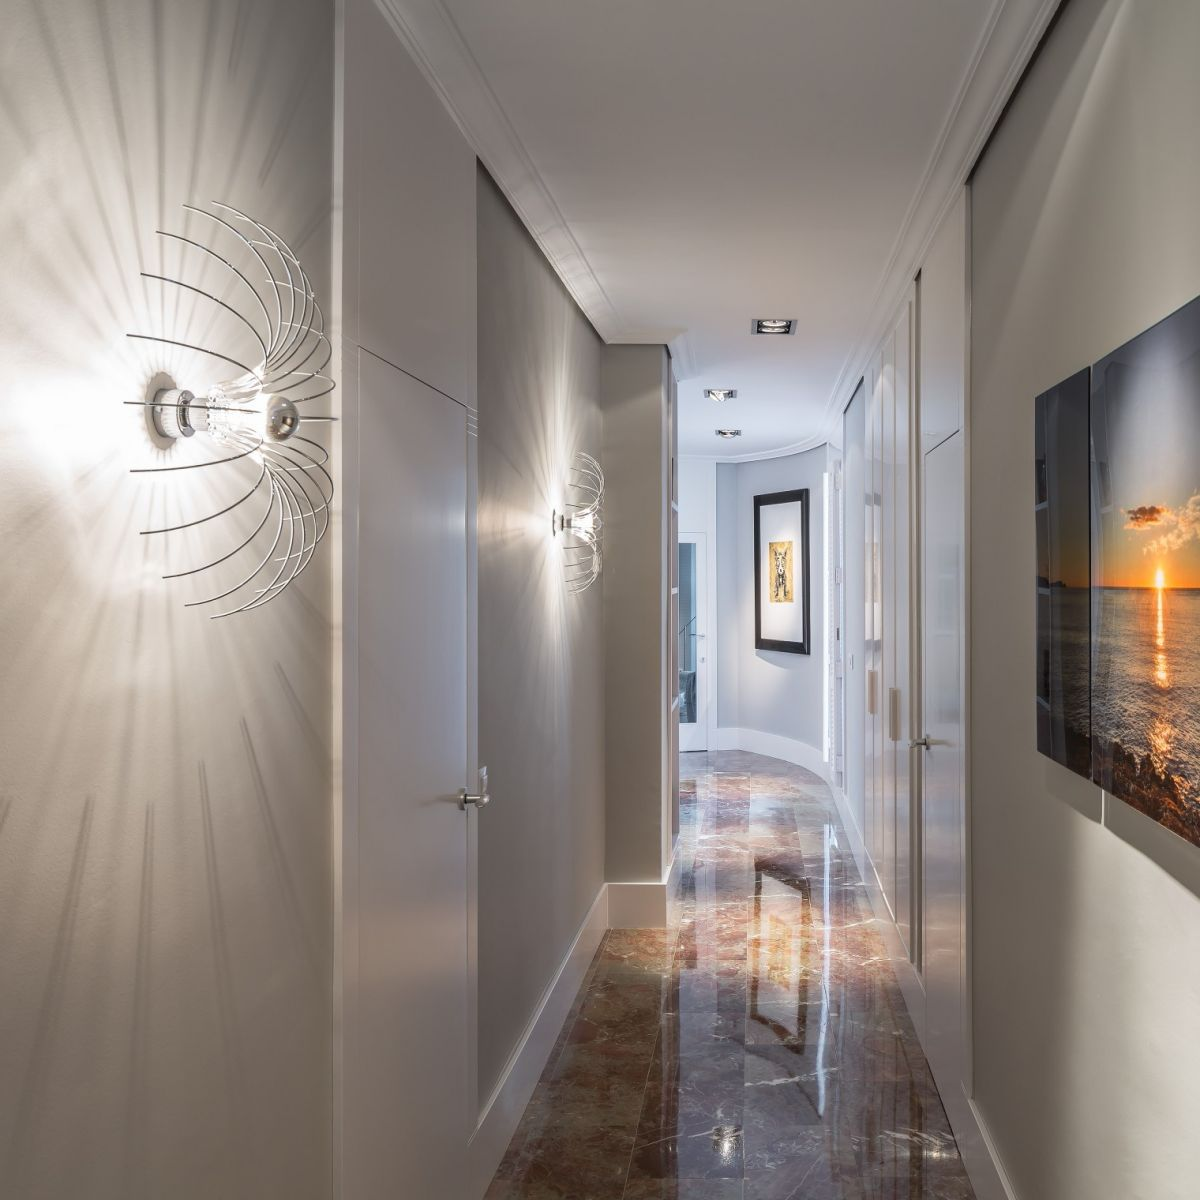 Lighting For Hallway: Sconce Lighting For Adding Sparkle To Your Interiors